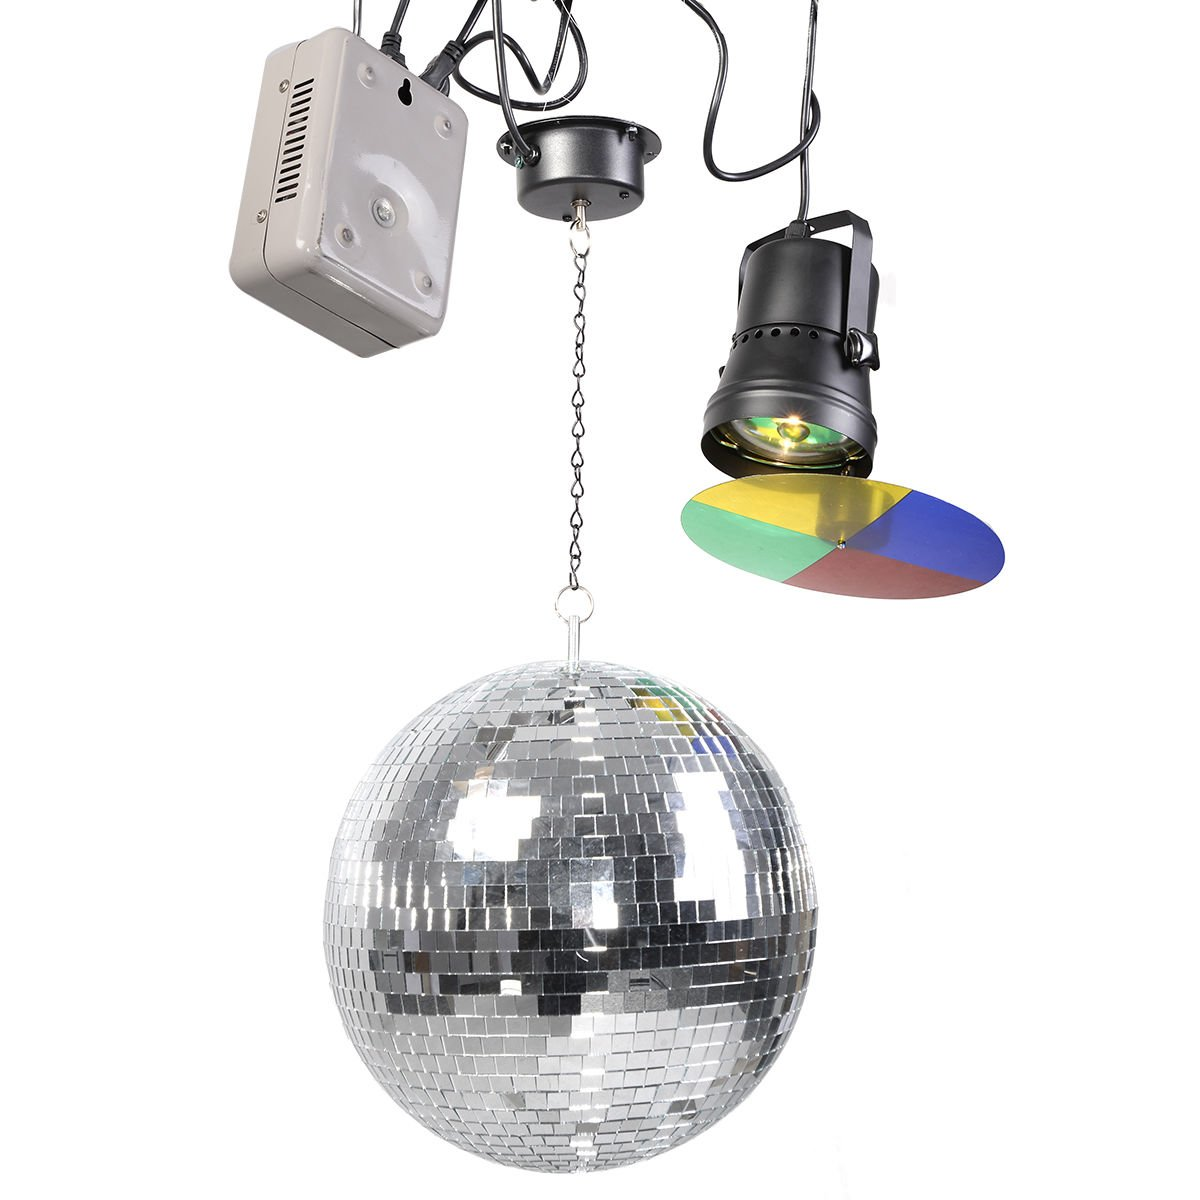 12 Mirror Disco Ball DJ Stage Party Motor LED Light Kit Rotating Spotlight